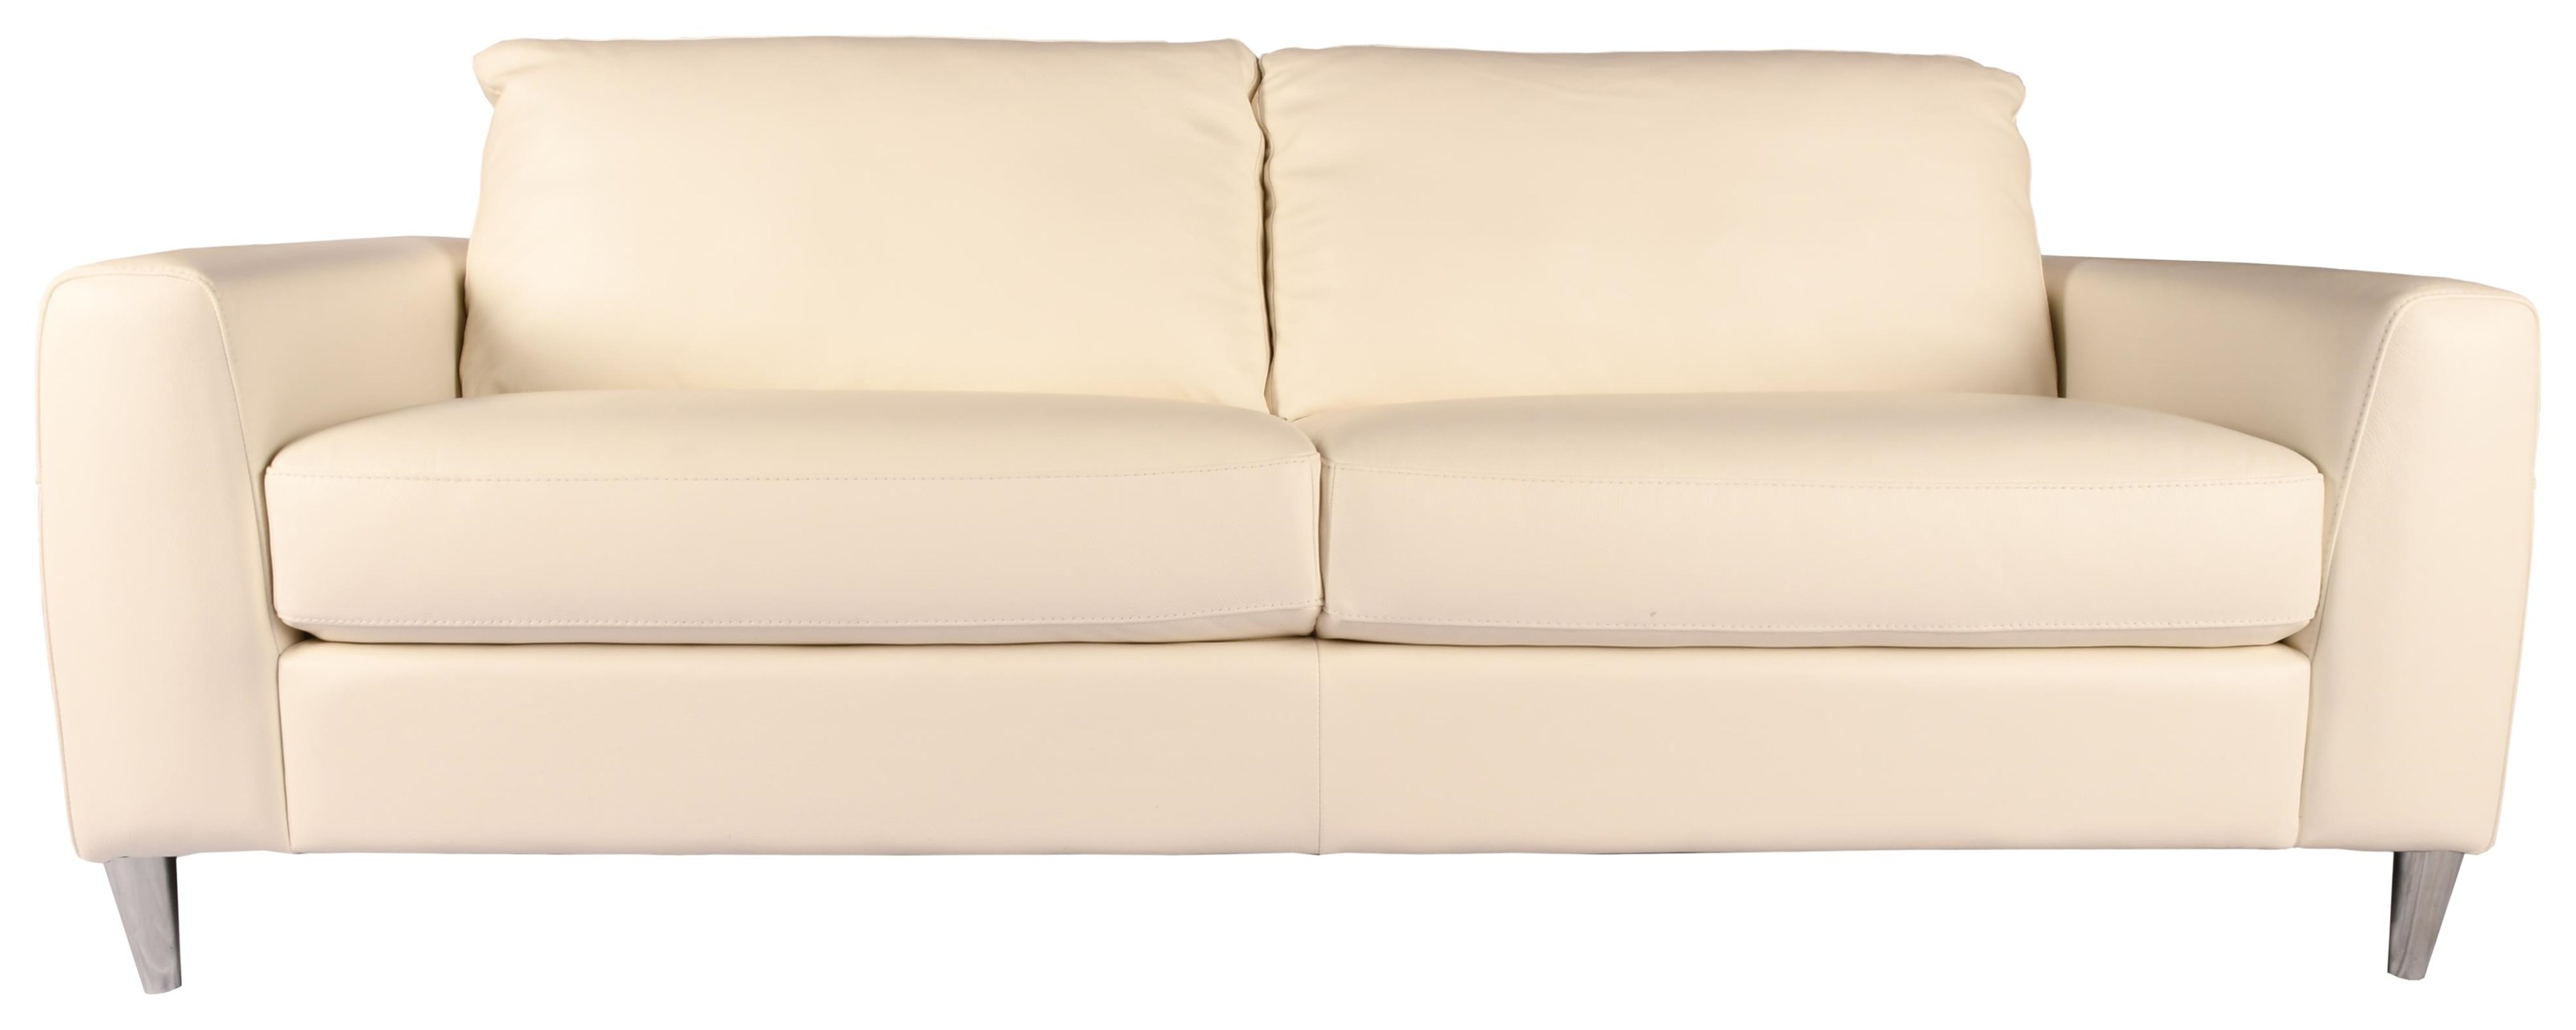 Antwerp Apartment Sofa by Rockwood at Bennett's Furniture and Mattresses